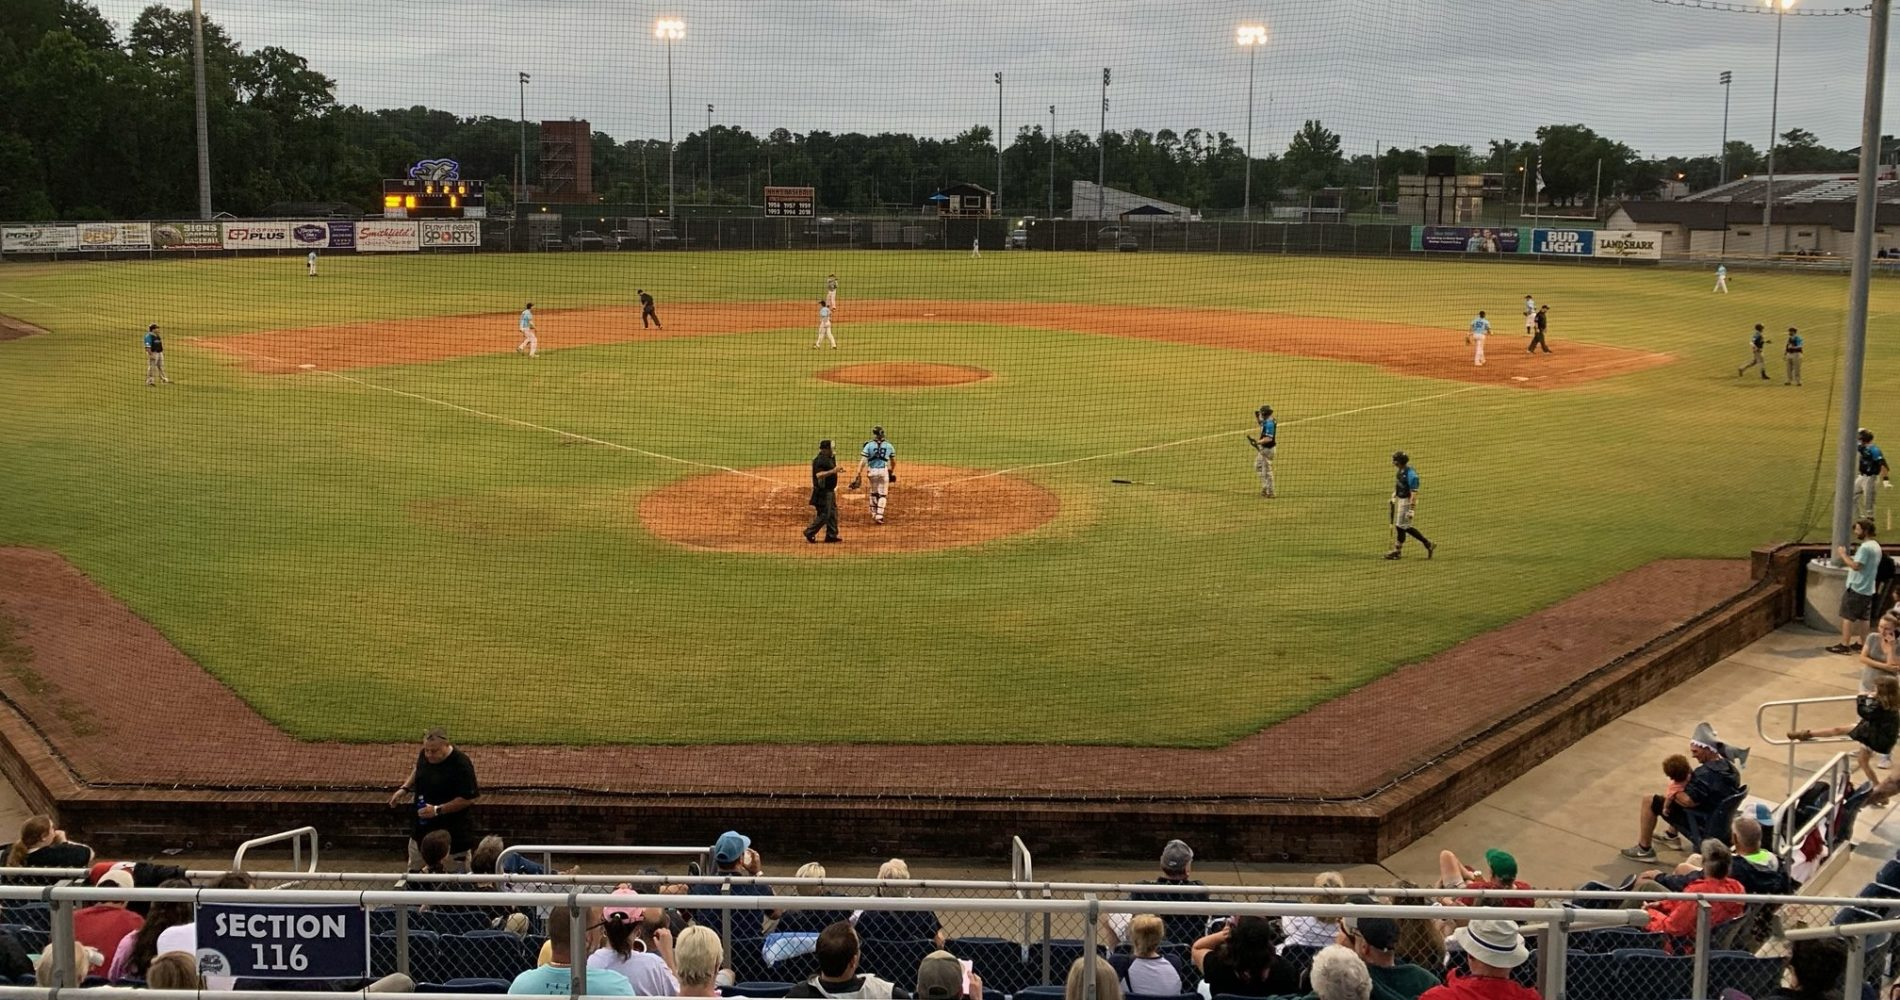 Sharks shutout Marlins for first win of 2021 campaign